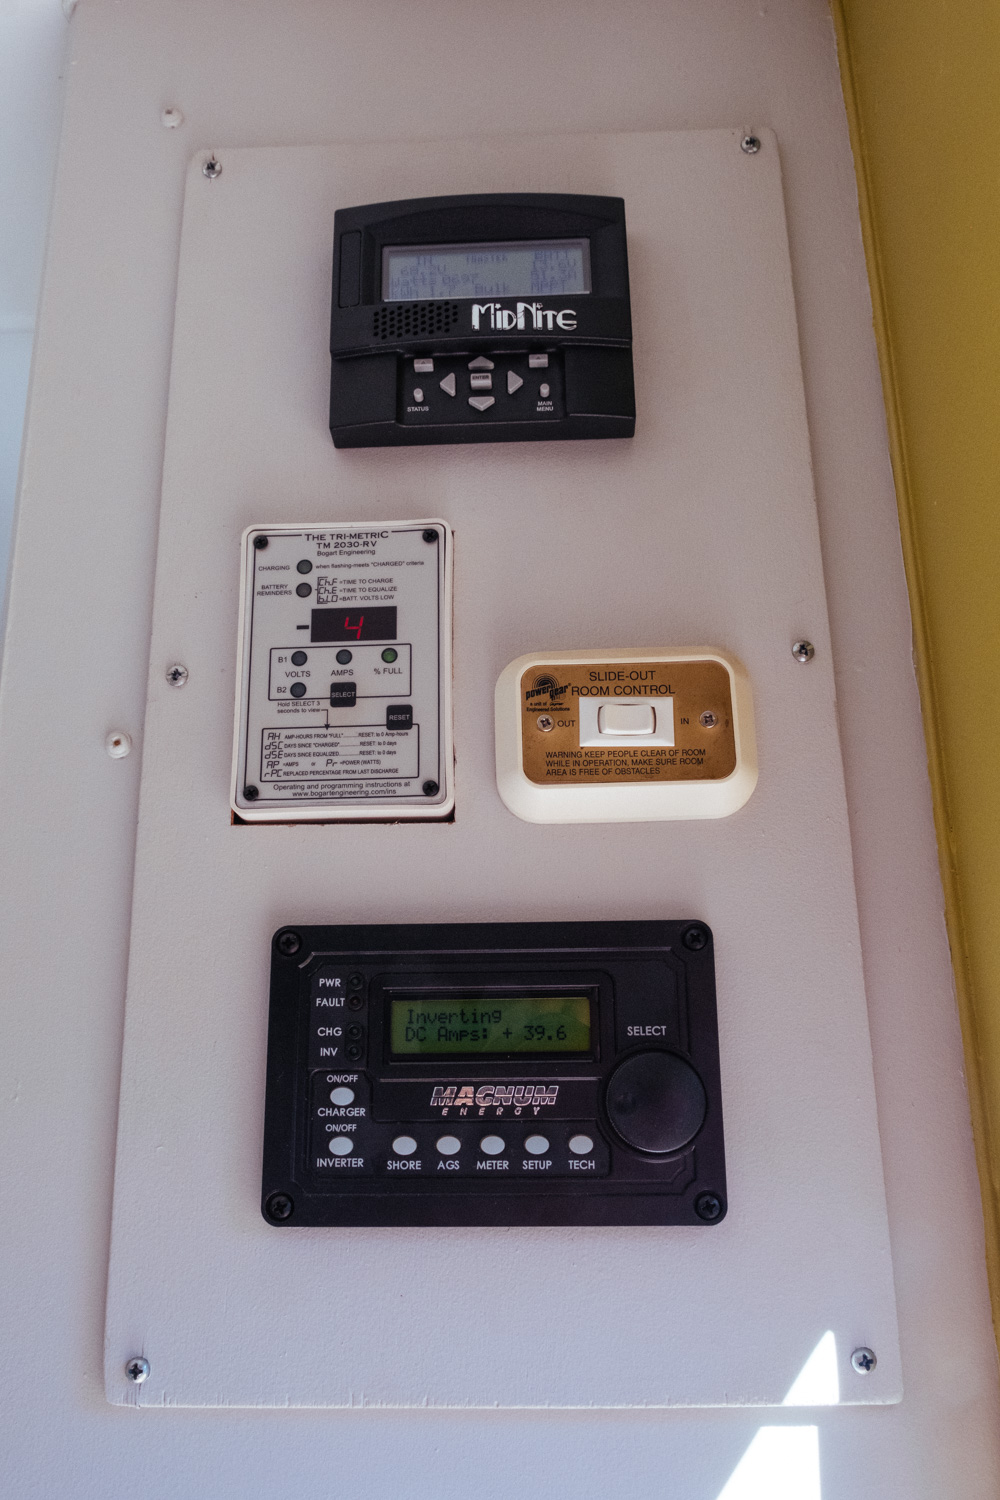 This is our current control panel layout (top to bottom): Midnight Solar remote display, Trimetric battery monitor, slide control, and Magnum inverter remote.